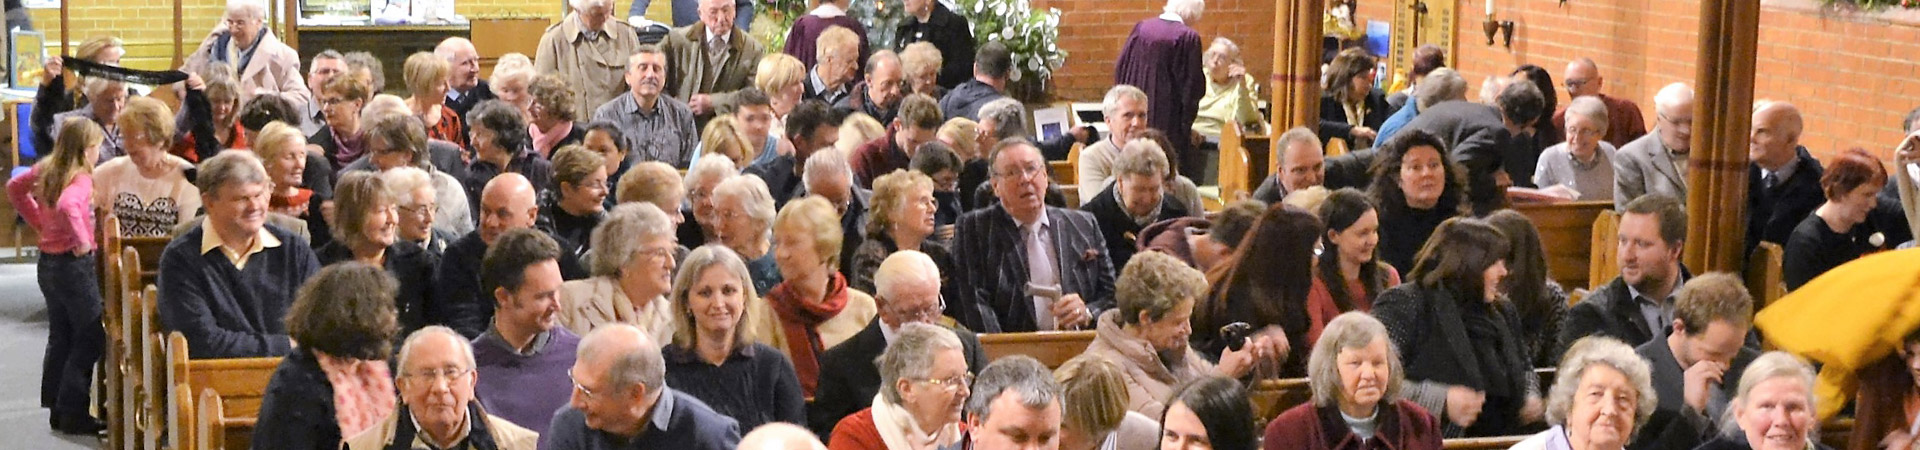 Rows of pews filled with people talking before an advent service